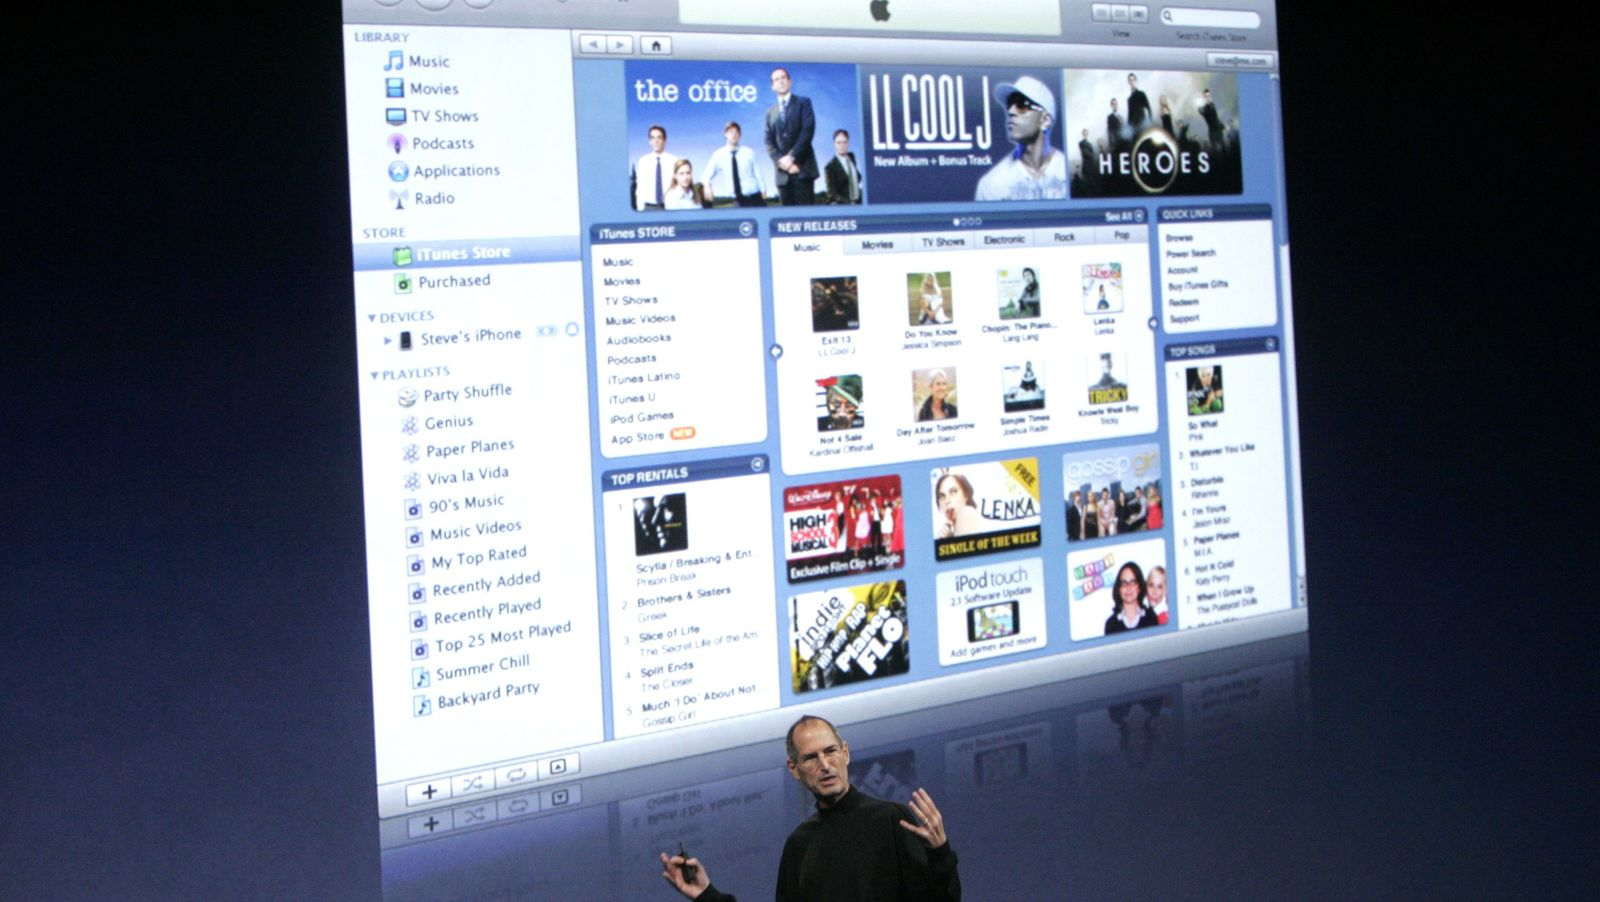 Steve Jobs em evento da Apple, falando sobre a iTunes Store